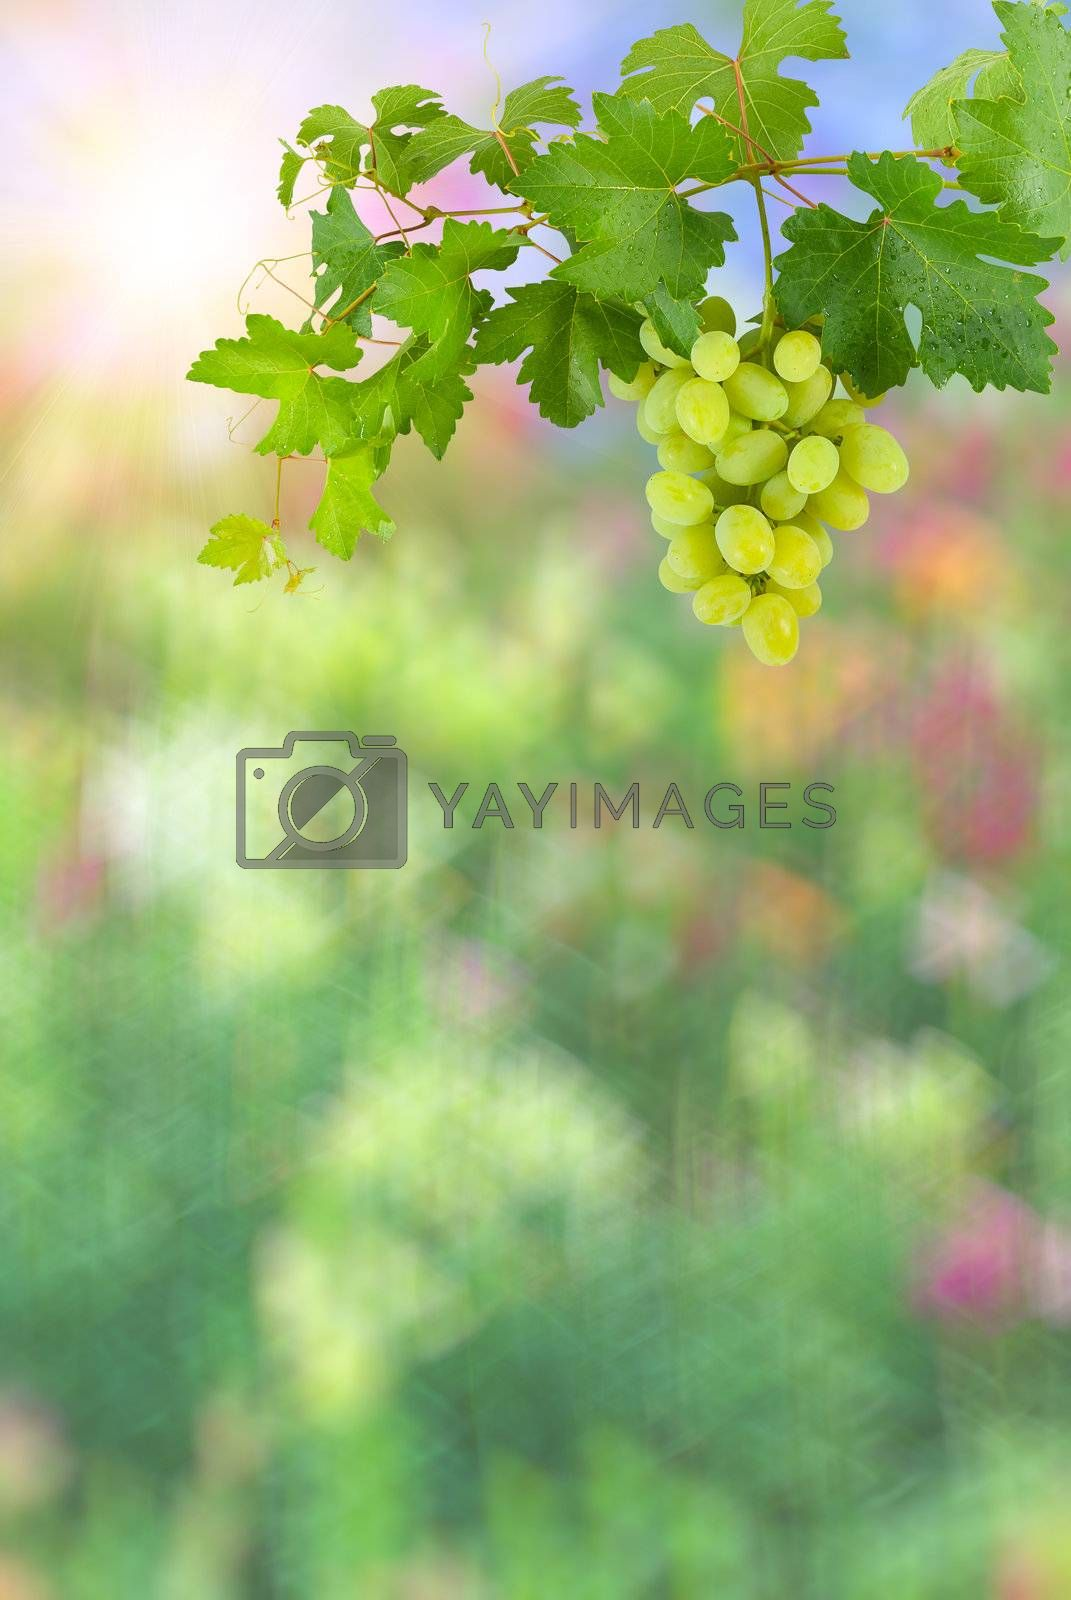 Colorful abstract background with sun and green grapes with leaves on branch